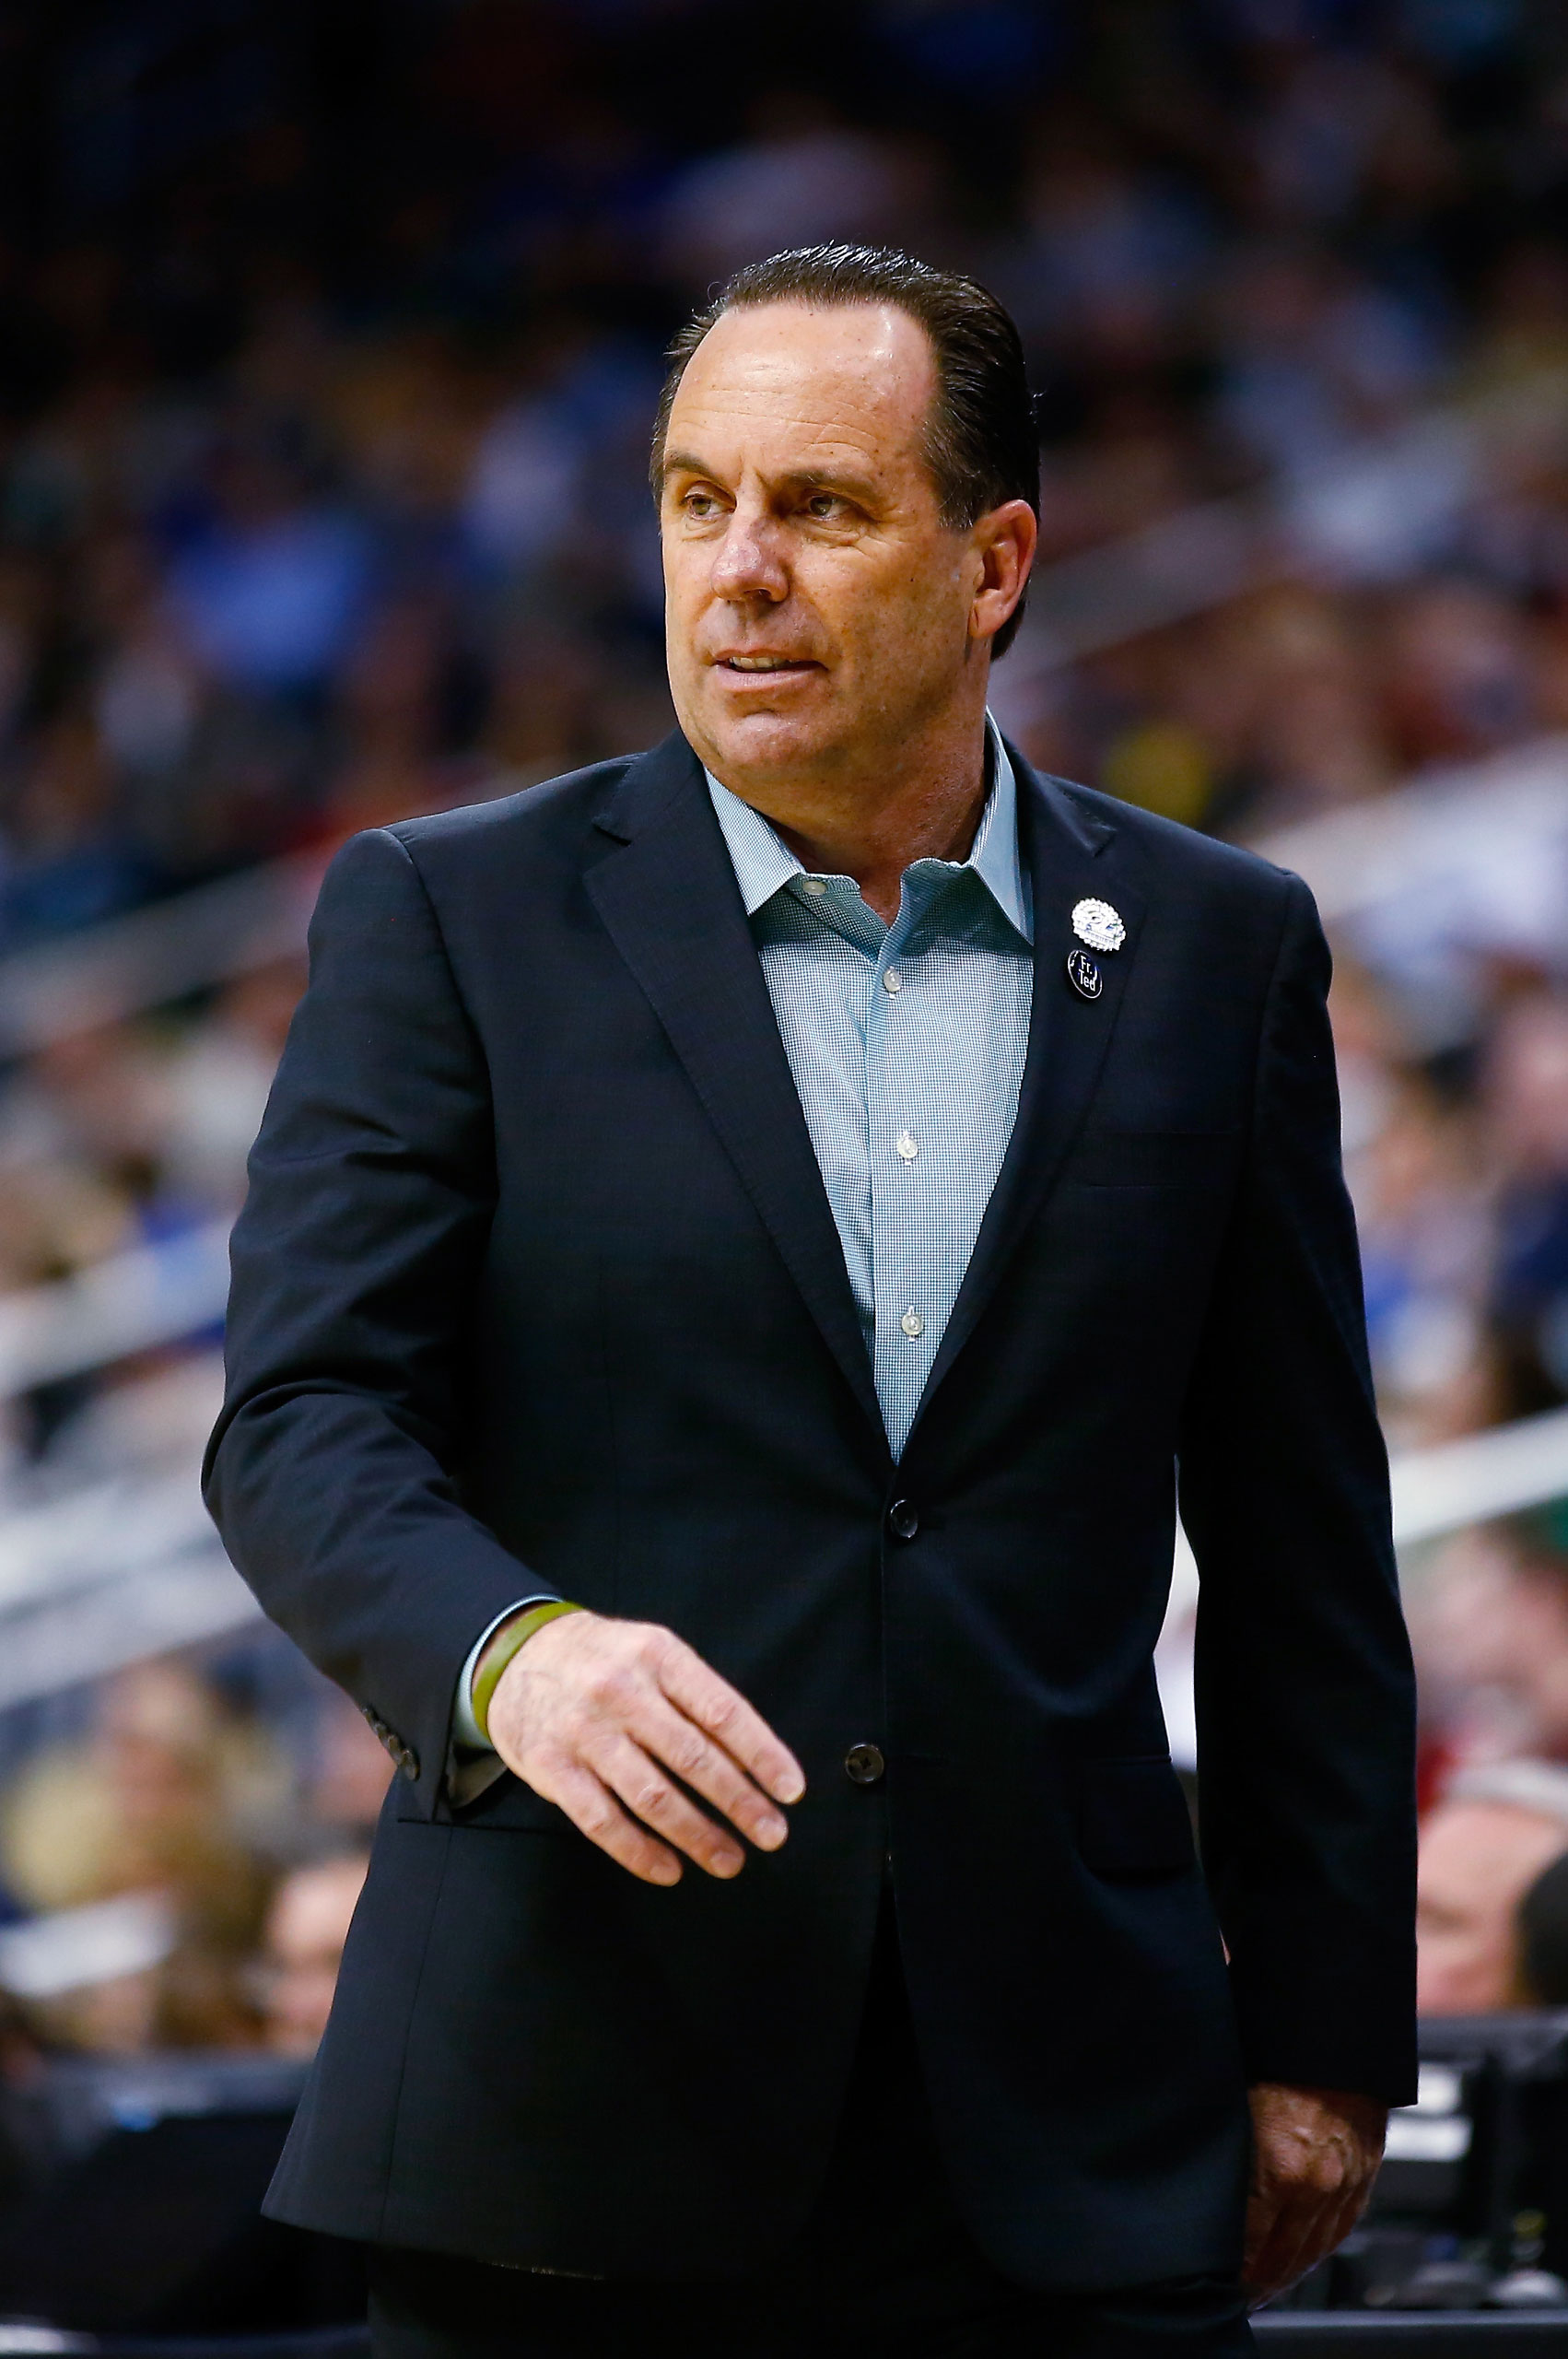 Head coach Mike Brey of the Notre Dame Fighting Irish watches during the first half against the Butler Bulldogs during the third round of the 2015 NCAA Men's Basketball Tournament on March 21, 2015 in Pittsburgh.